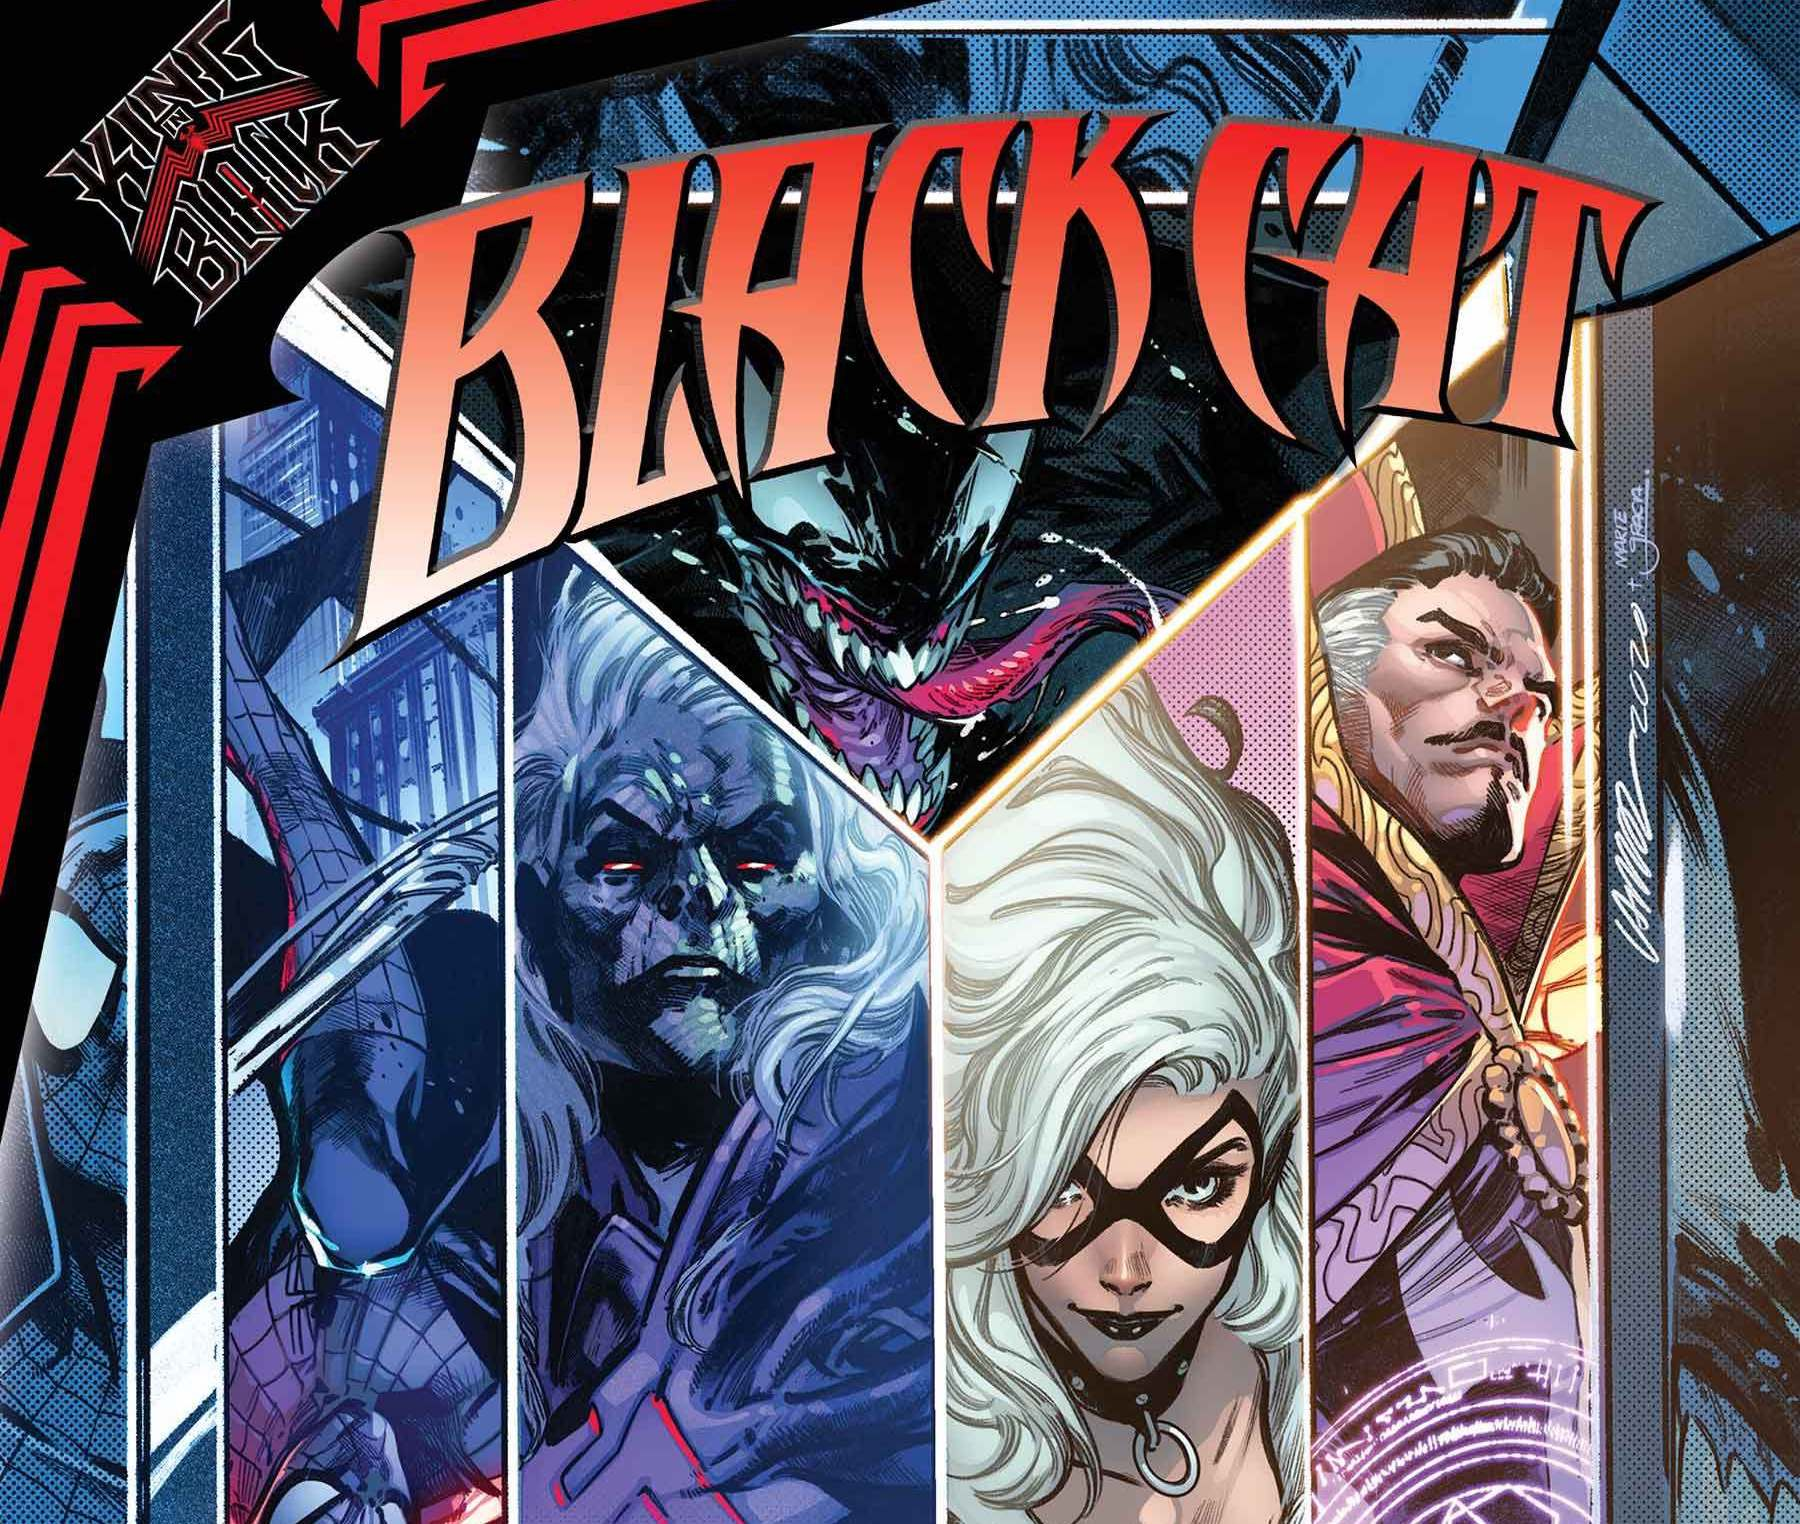 EXCLUSIVE Marvel First Look: Black Cat #3 solicit and cover